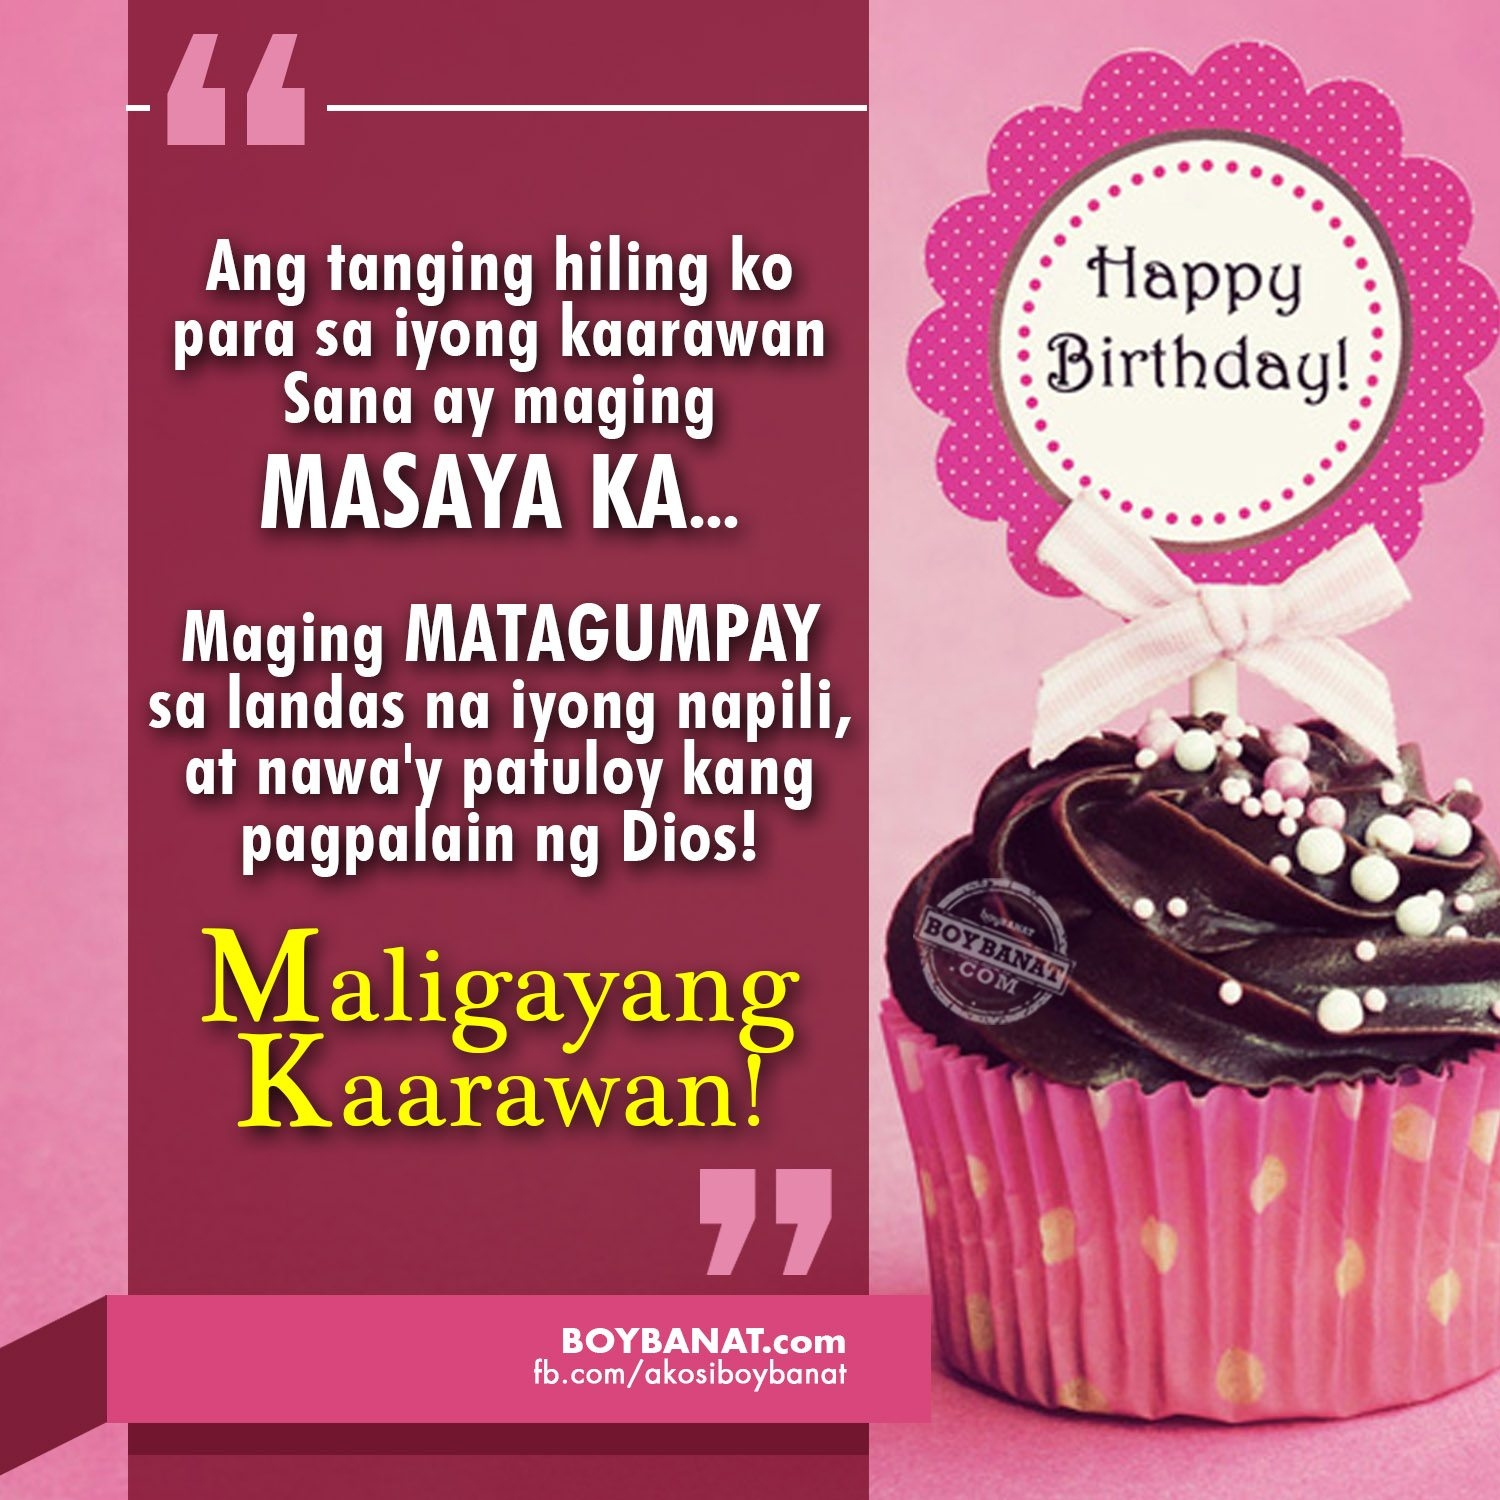 birthday message for daddy tagalog ; happy-birthday-quotes-and-heartfelt-birthday-messages-boy-banat-for-birthday-letter-for-a-friend-tagalog